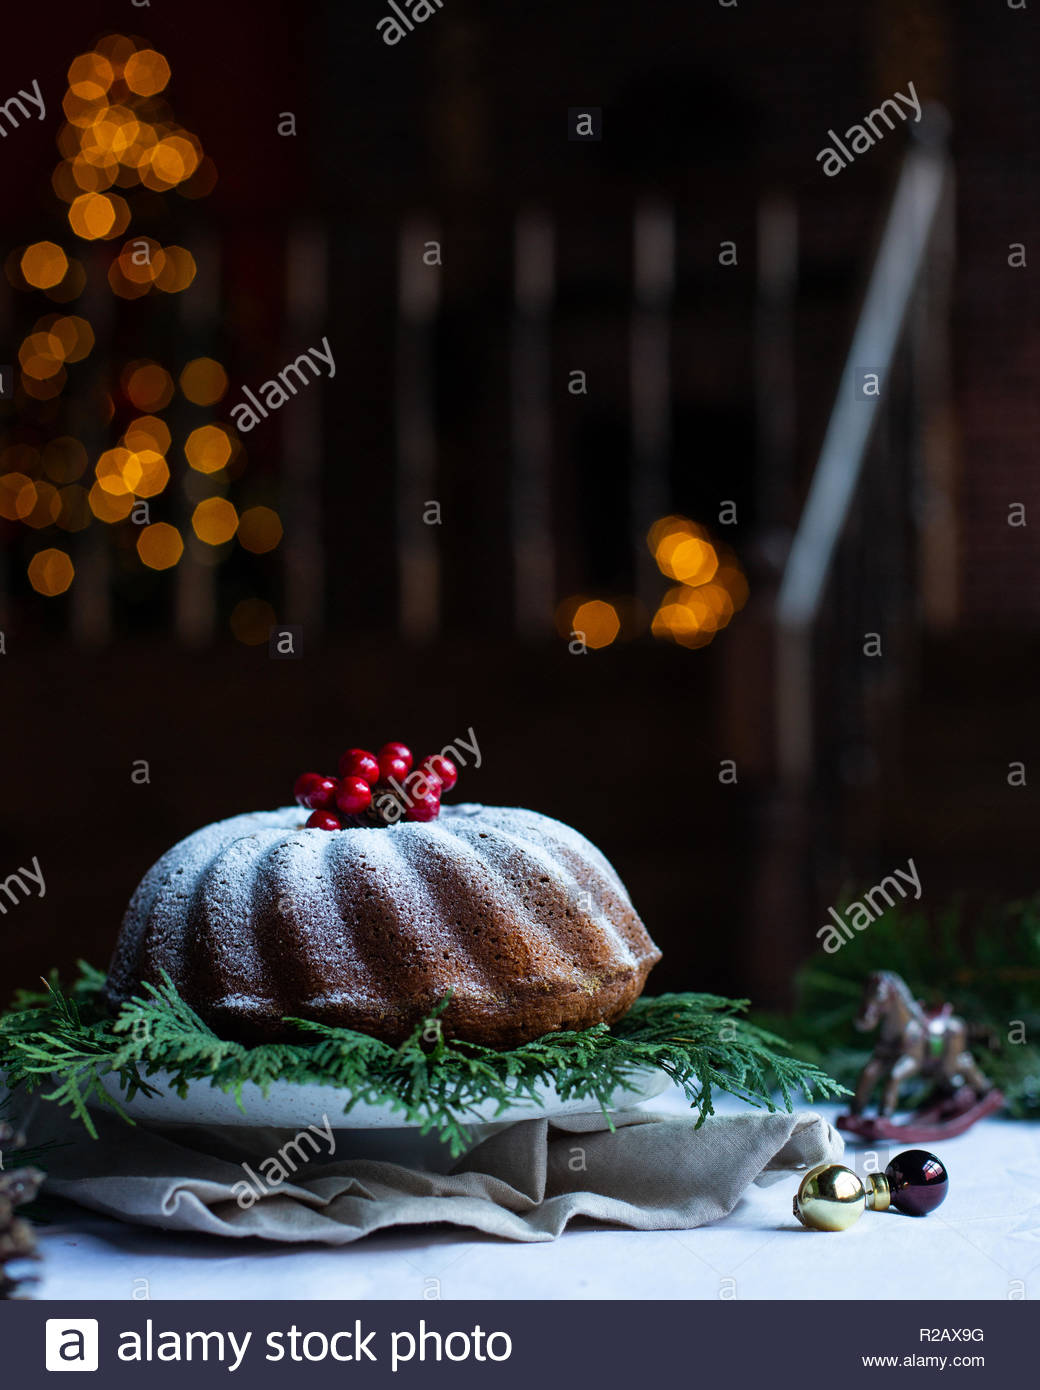 Dark cozy room with a staircase and Christmas decorations. Christmas lights in bokeh. Fireplace and Christmas tree on background. - Stock Image